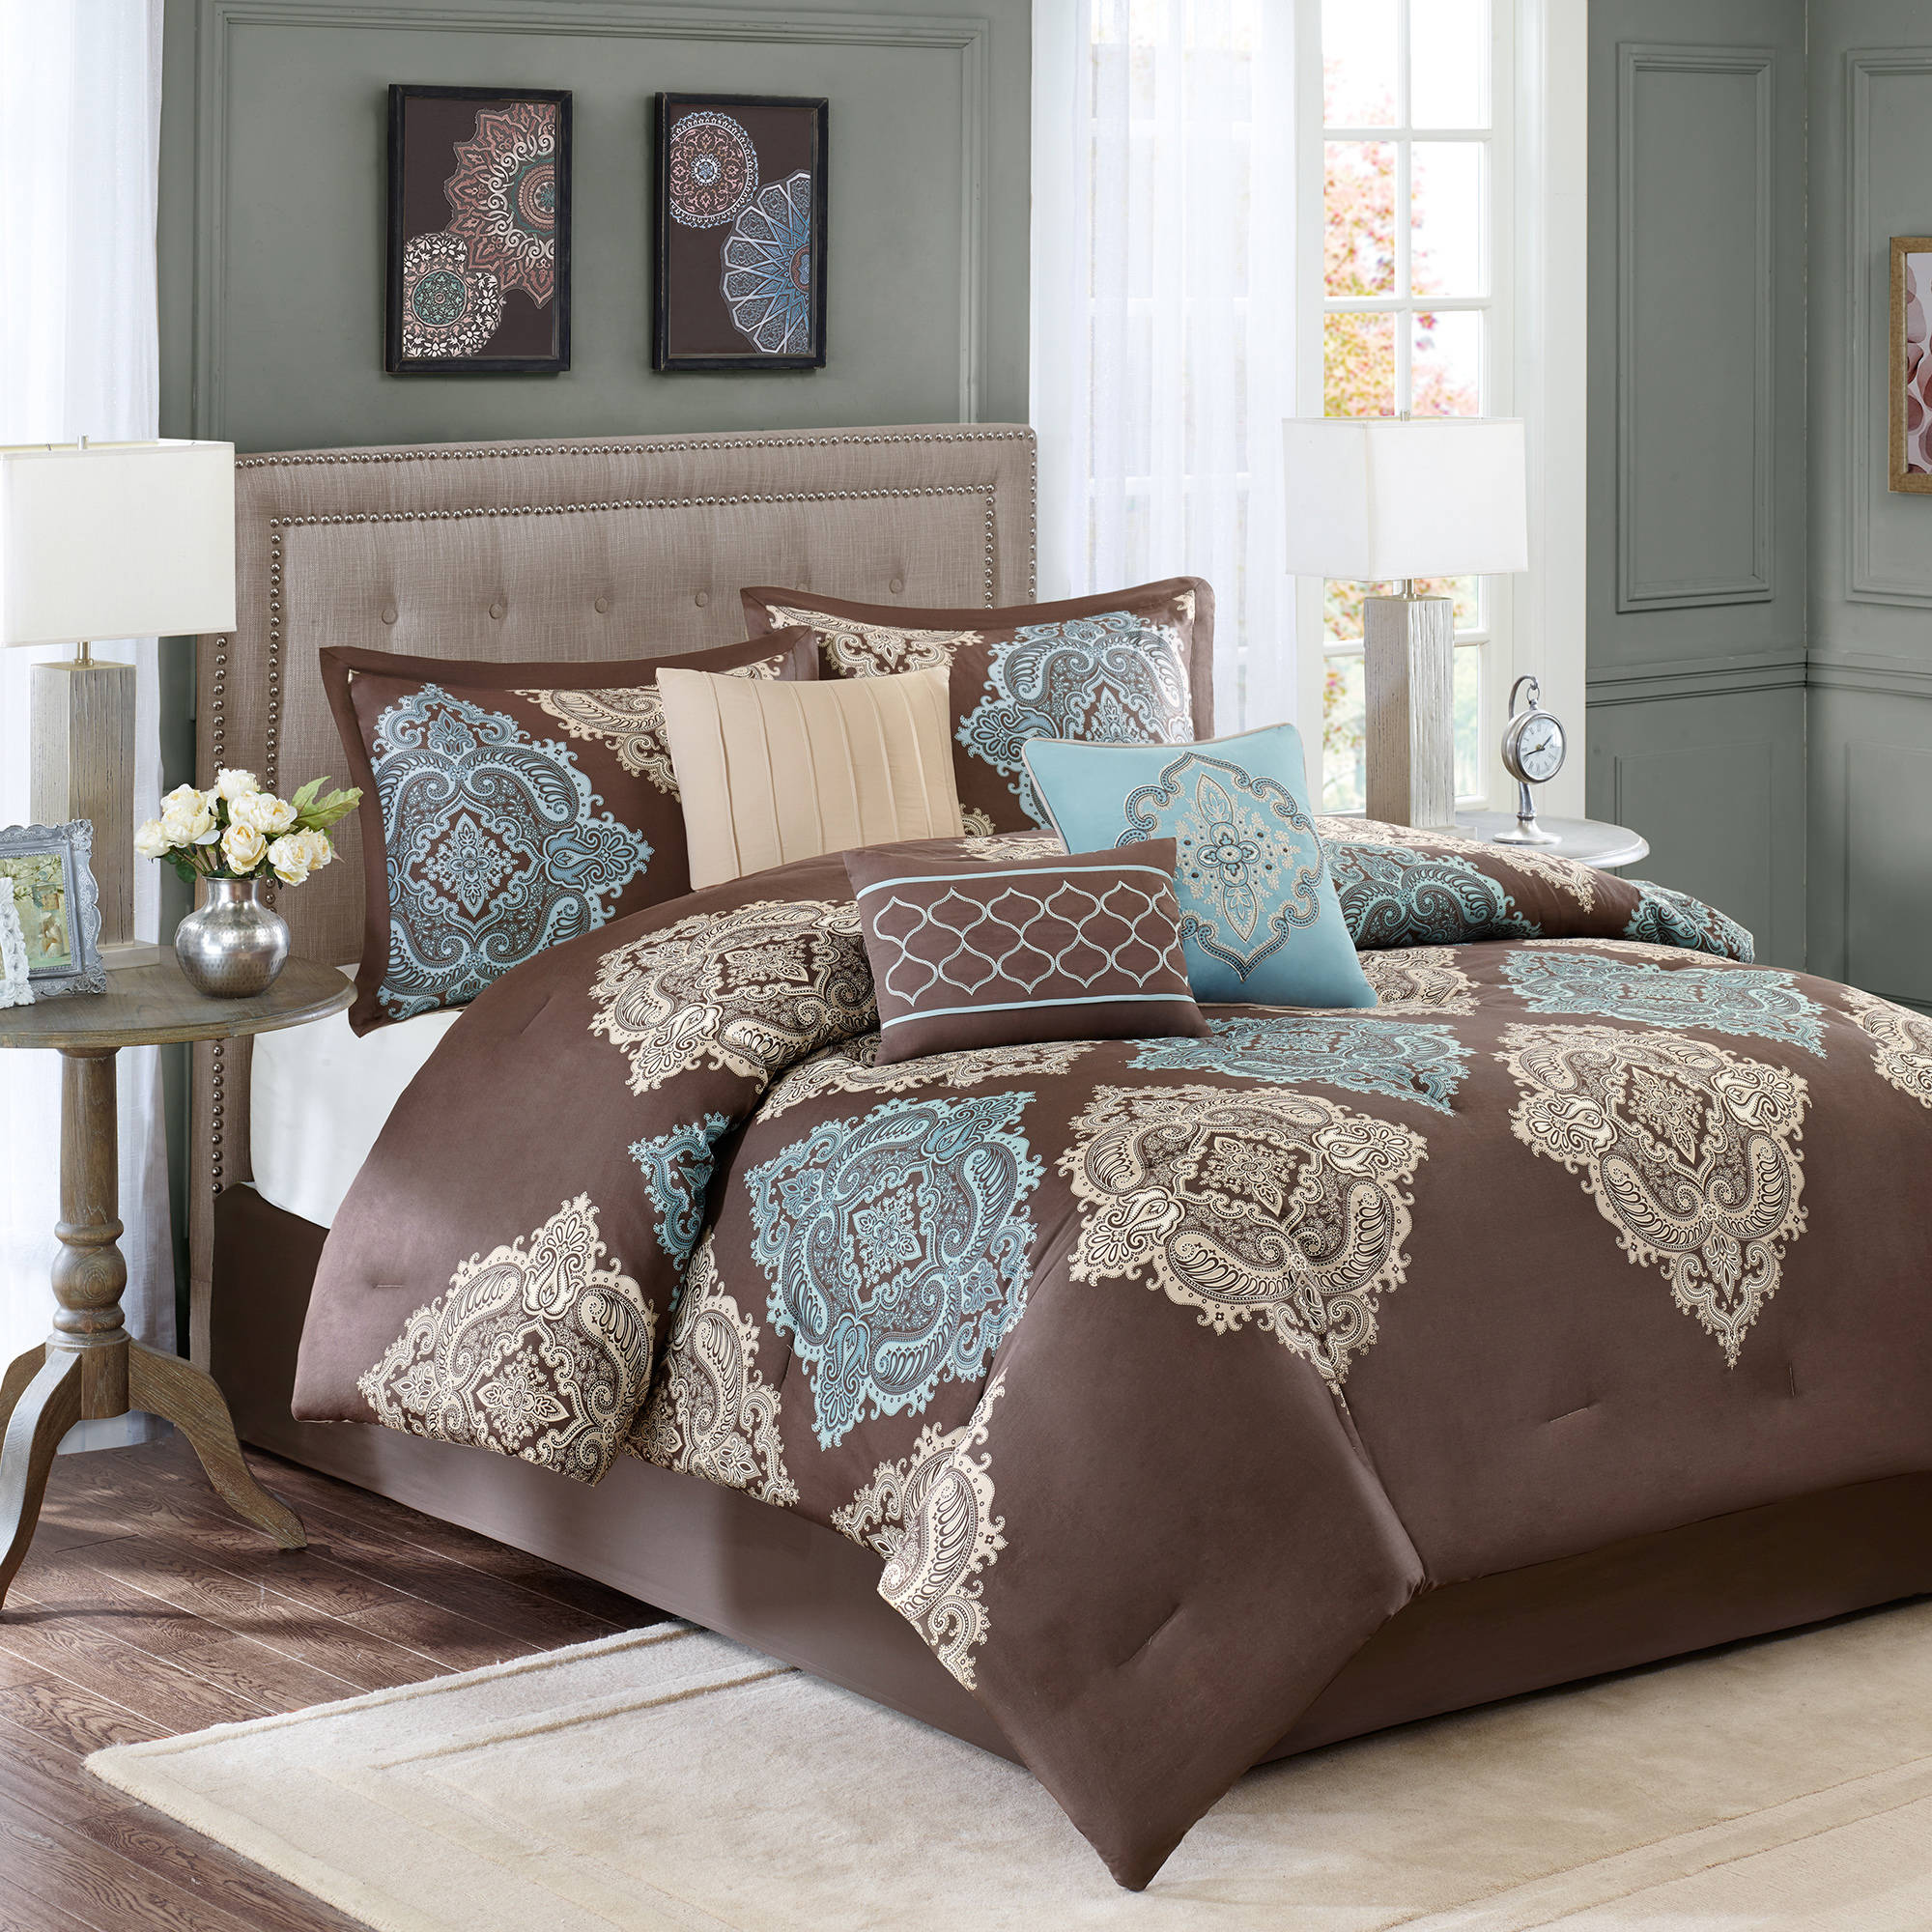 Home Essence Stratford Bedding Comforter Set